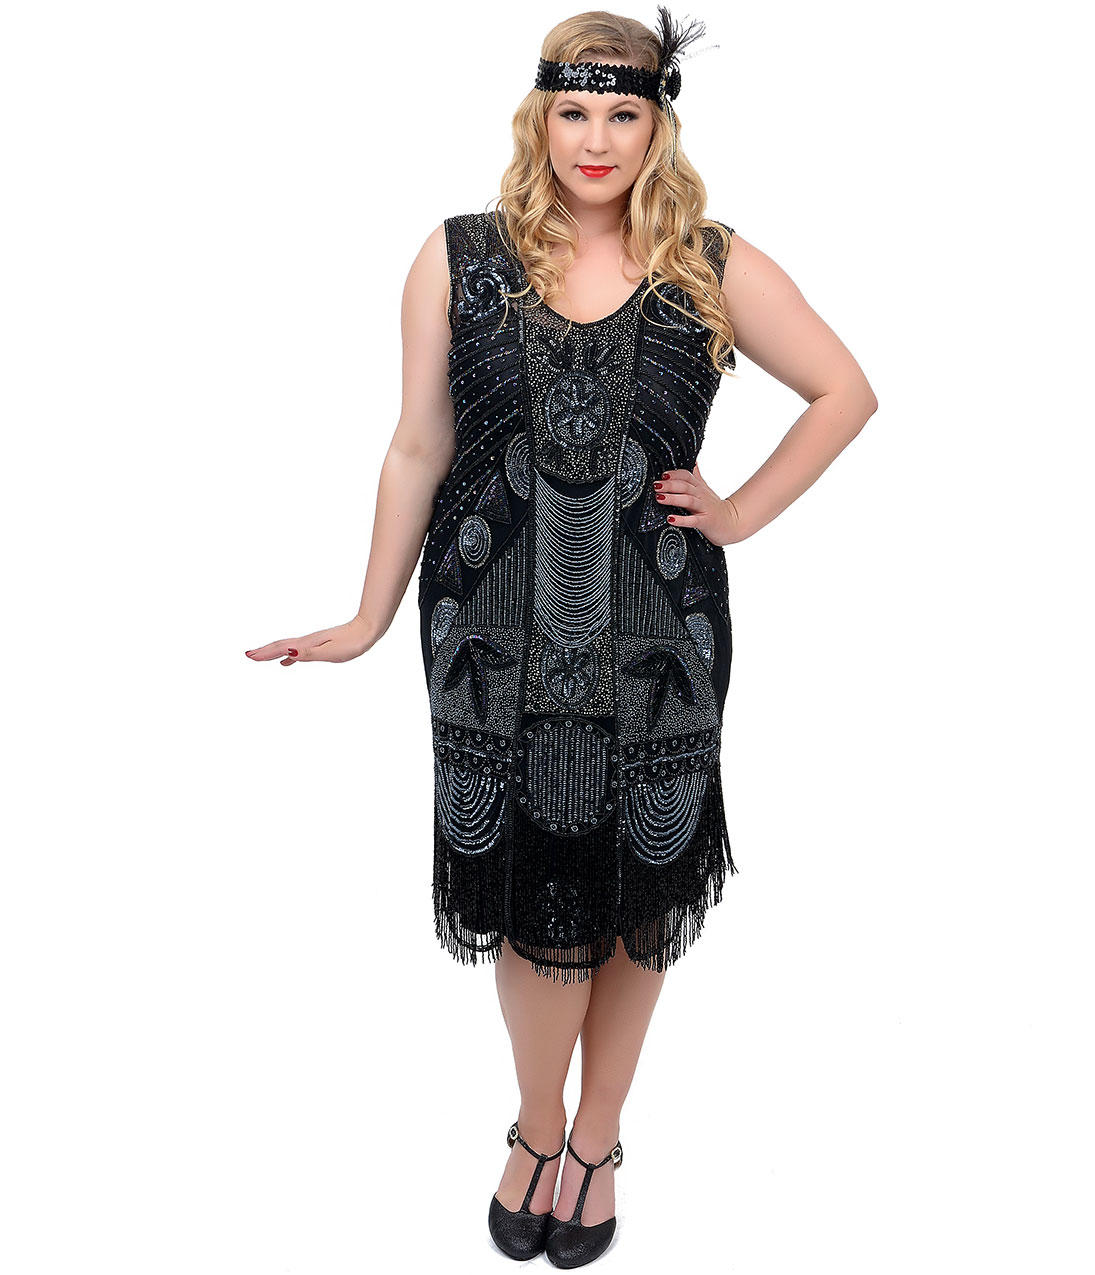 95dede11e4689 Unique Vintage Plus Size 1920s